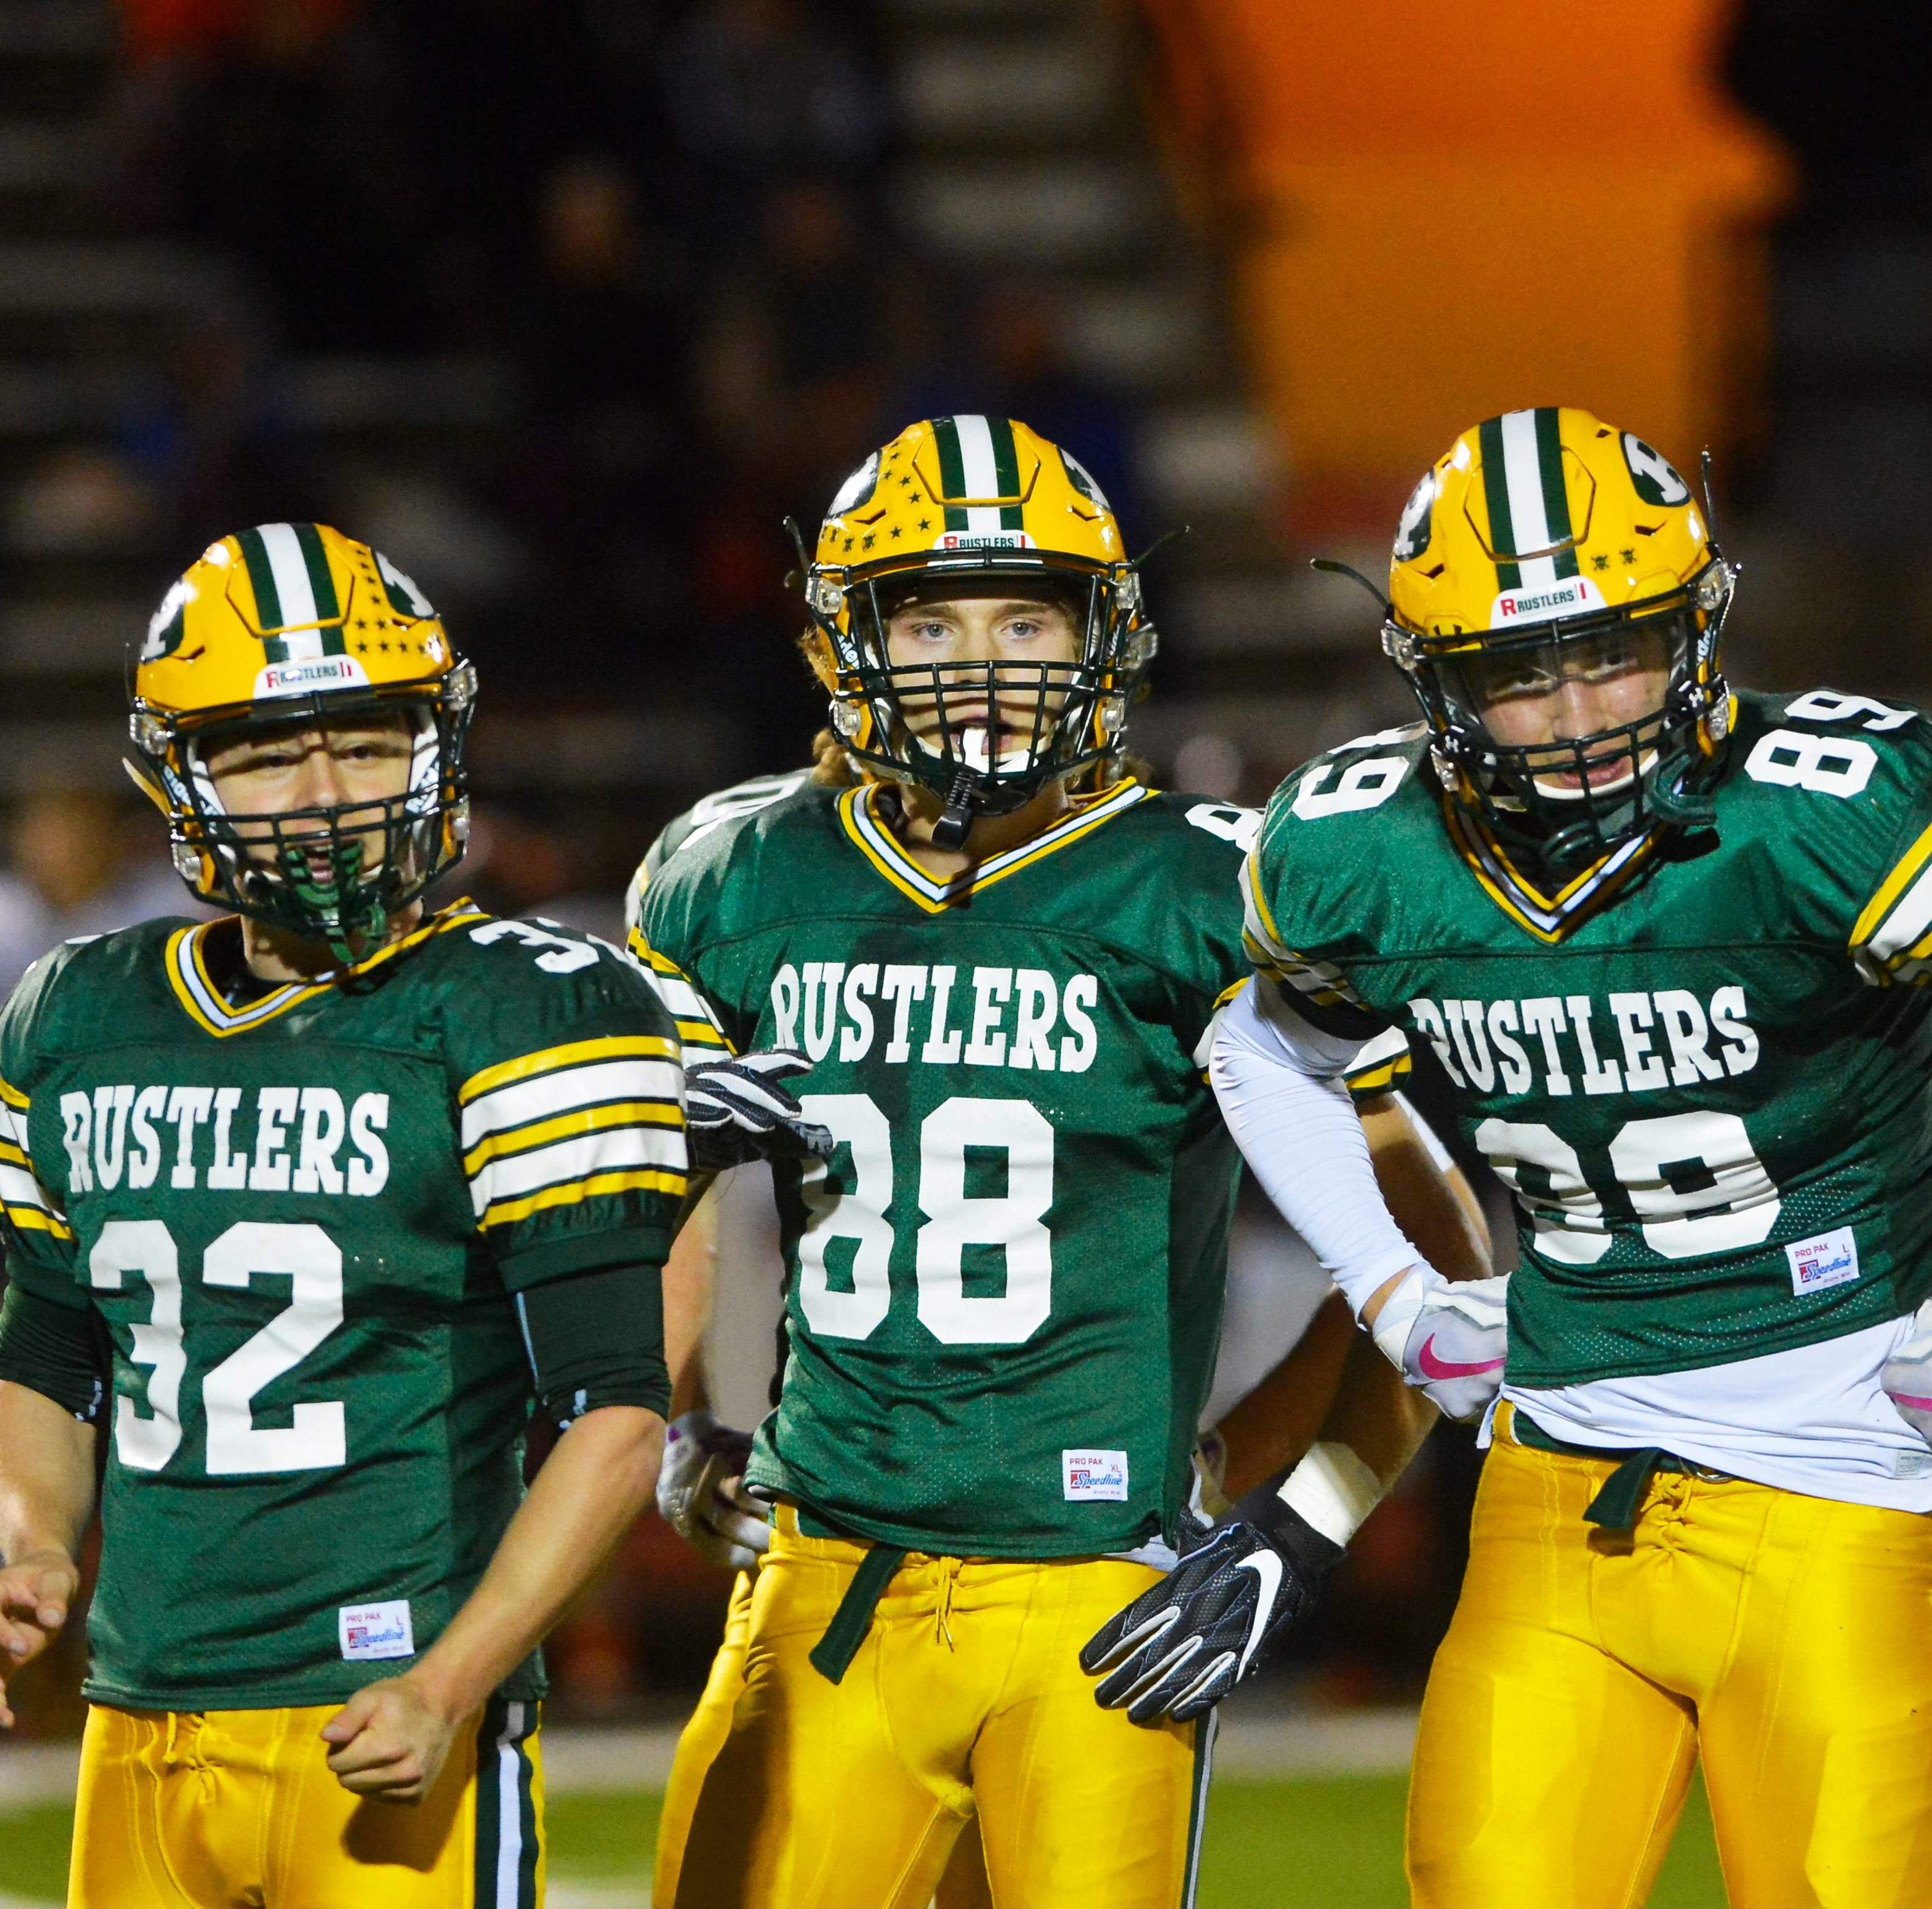 West Bears overcome fast-starting CMR Rustlers